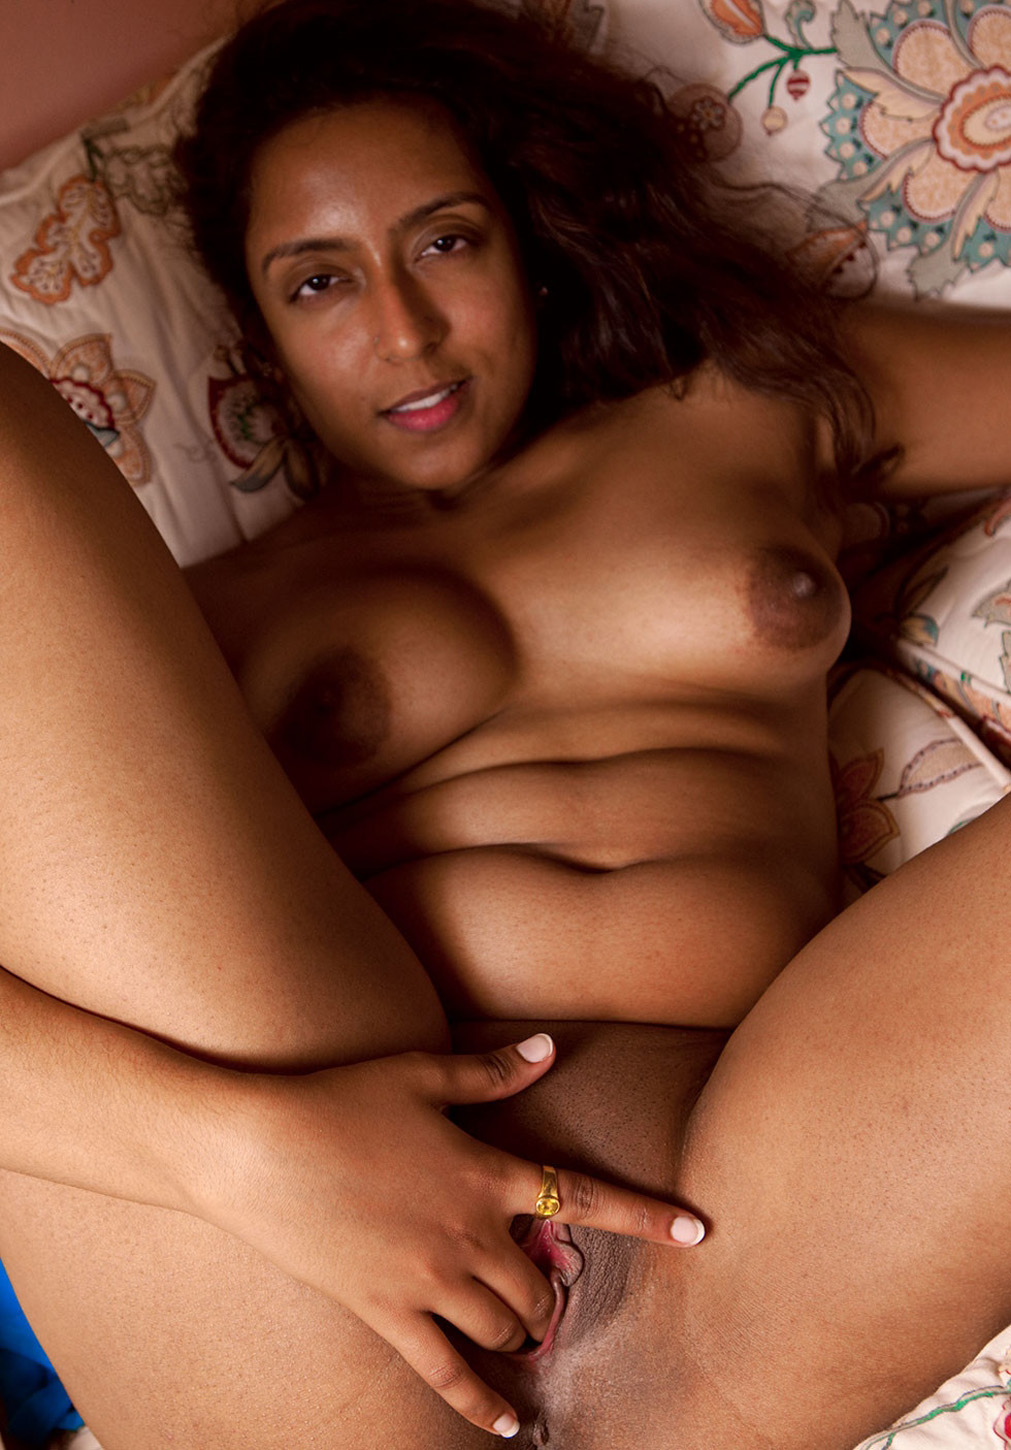 sexy xxx pakistani girls pic